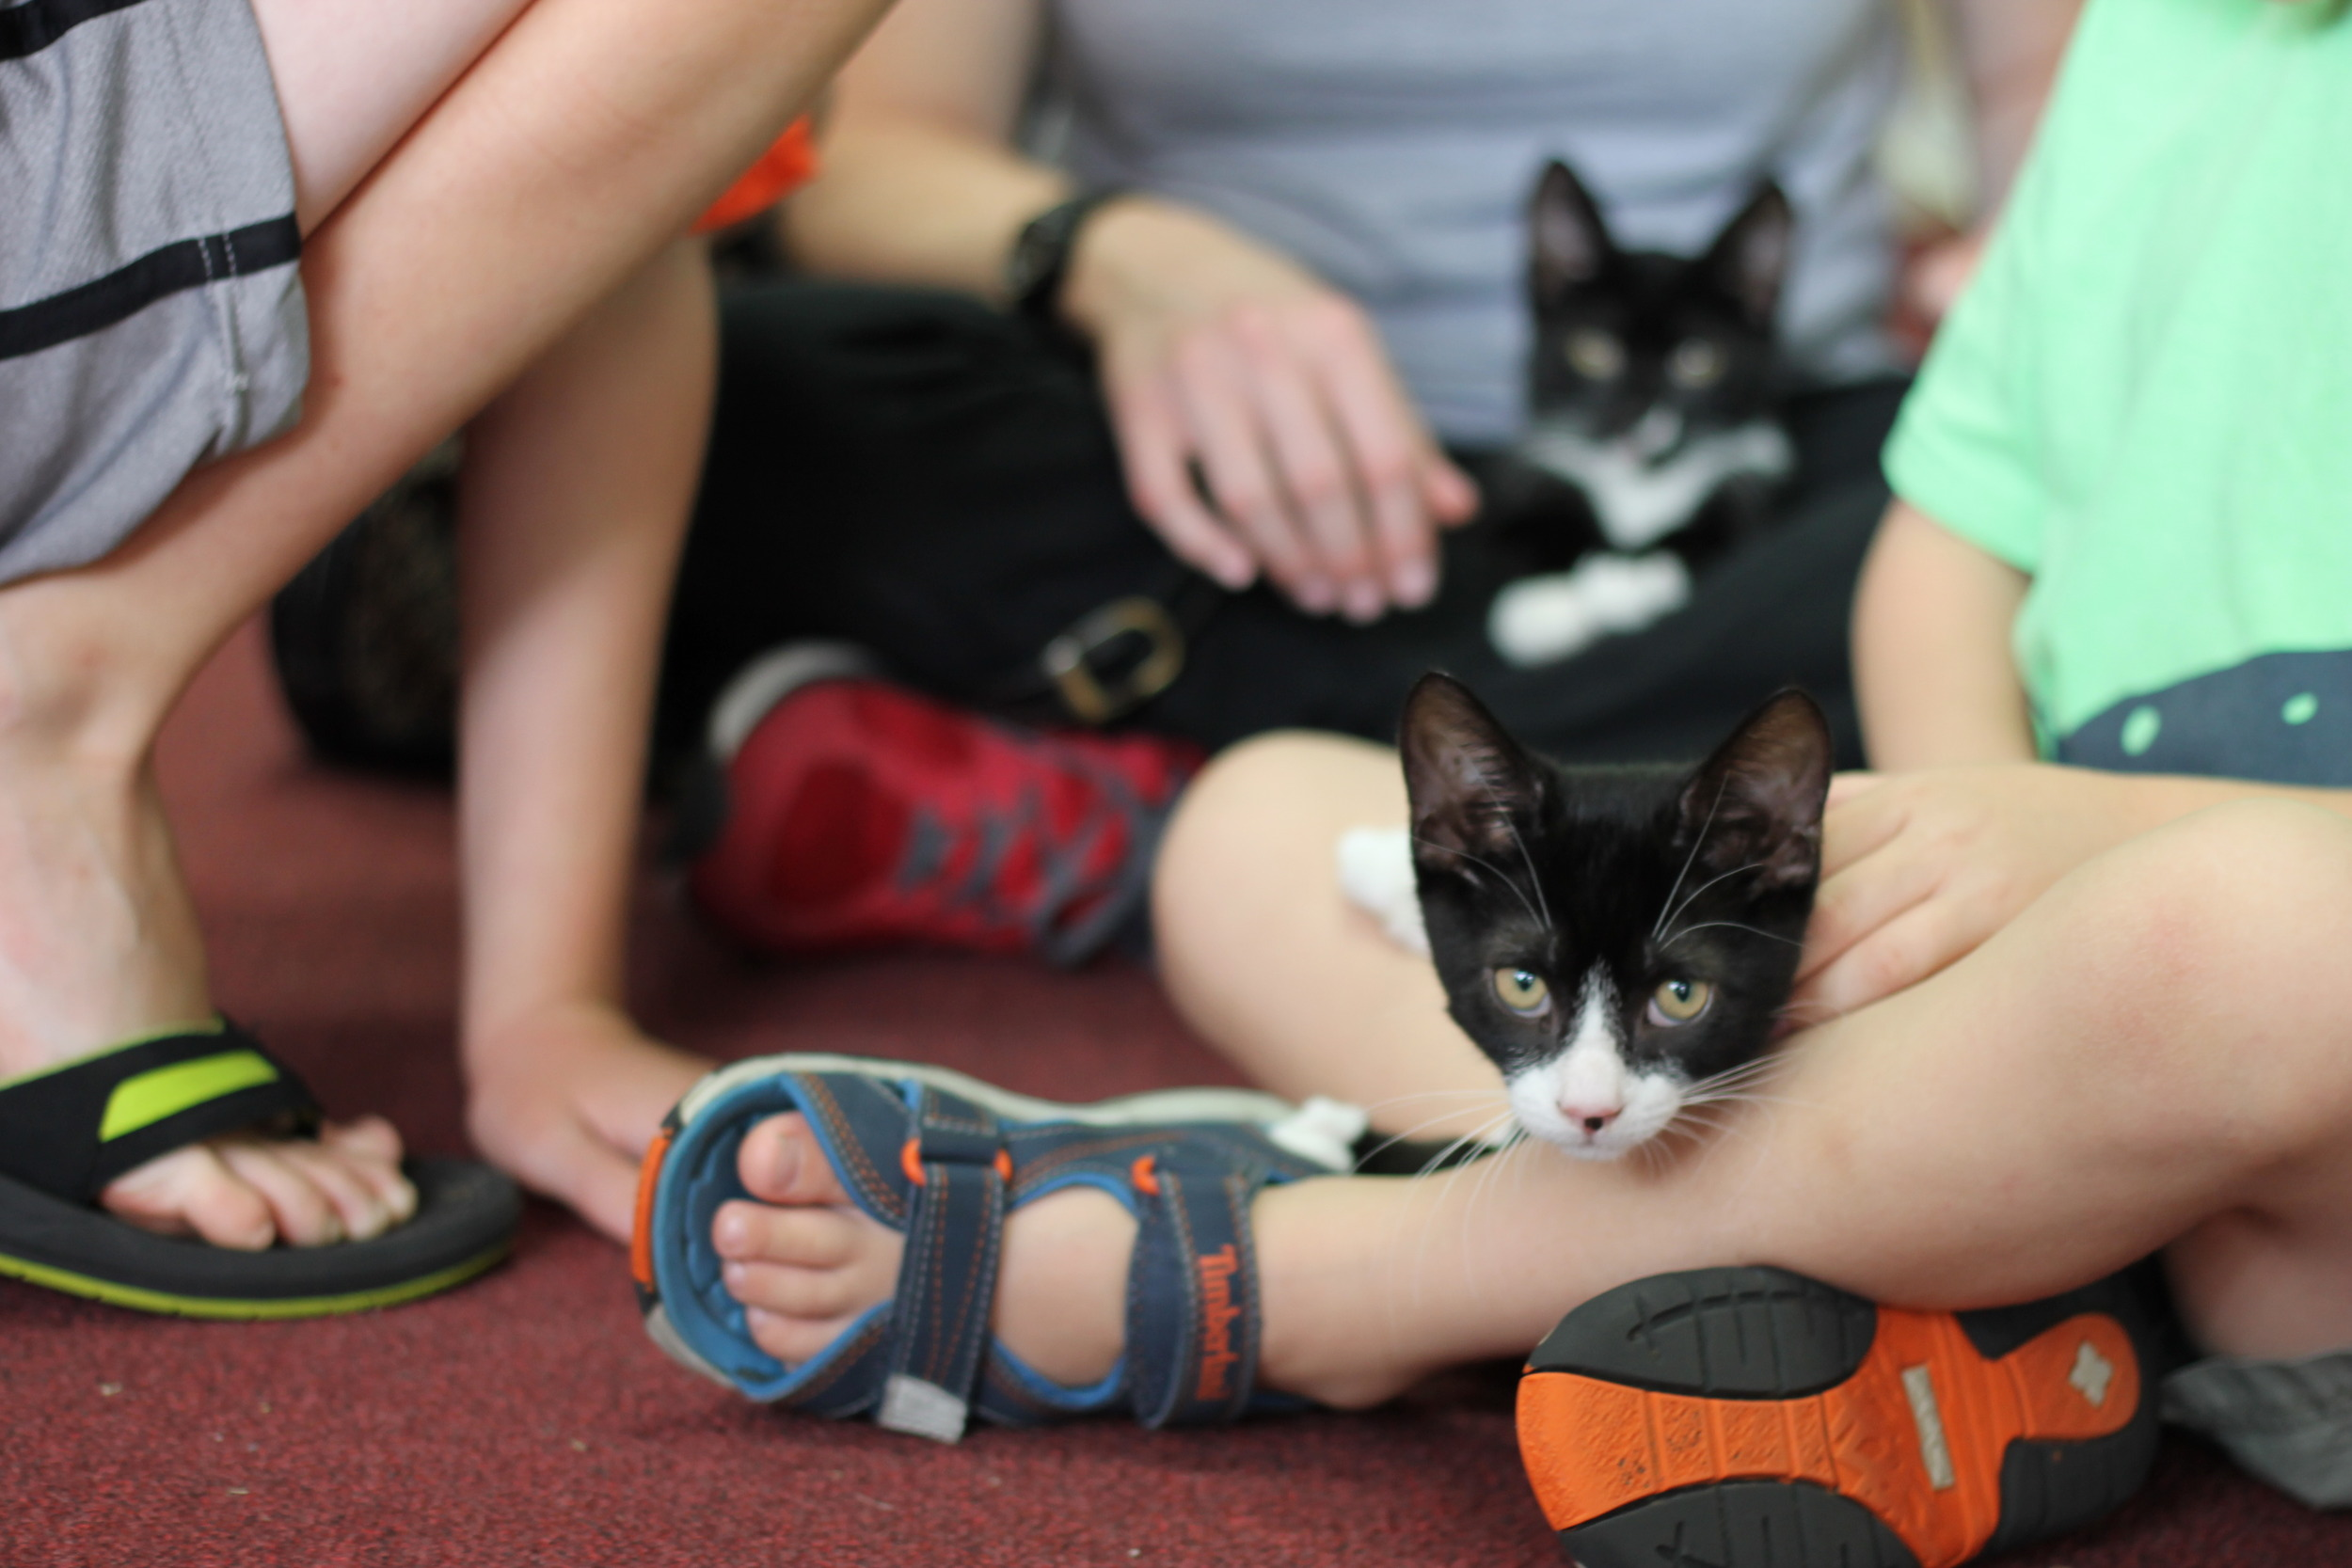 Two tuxedo kittens, Fred and Ethel enjoying their time with a family. They were so patient and sweet with the kids.